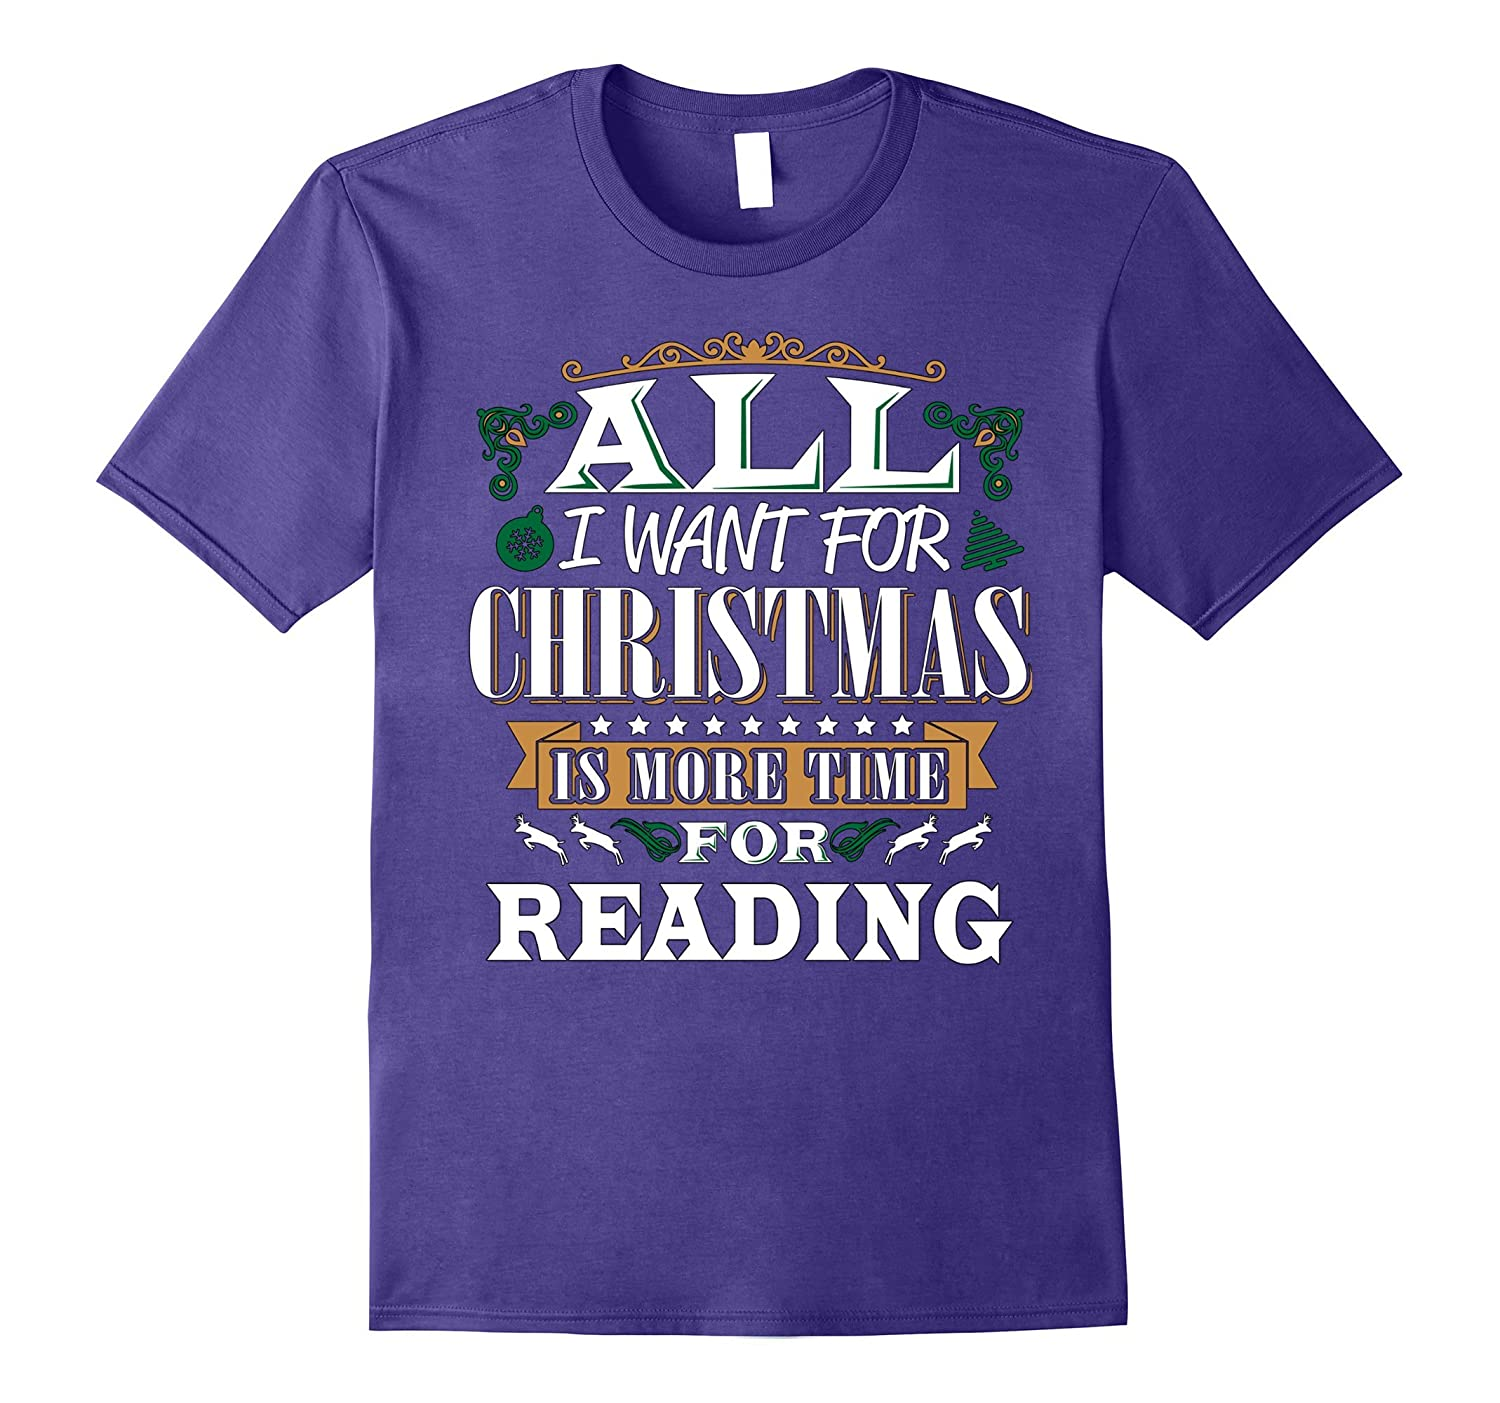 All I Want For Christmas is Time for Reading Funny T Shirt-FL